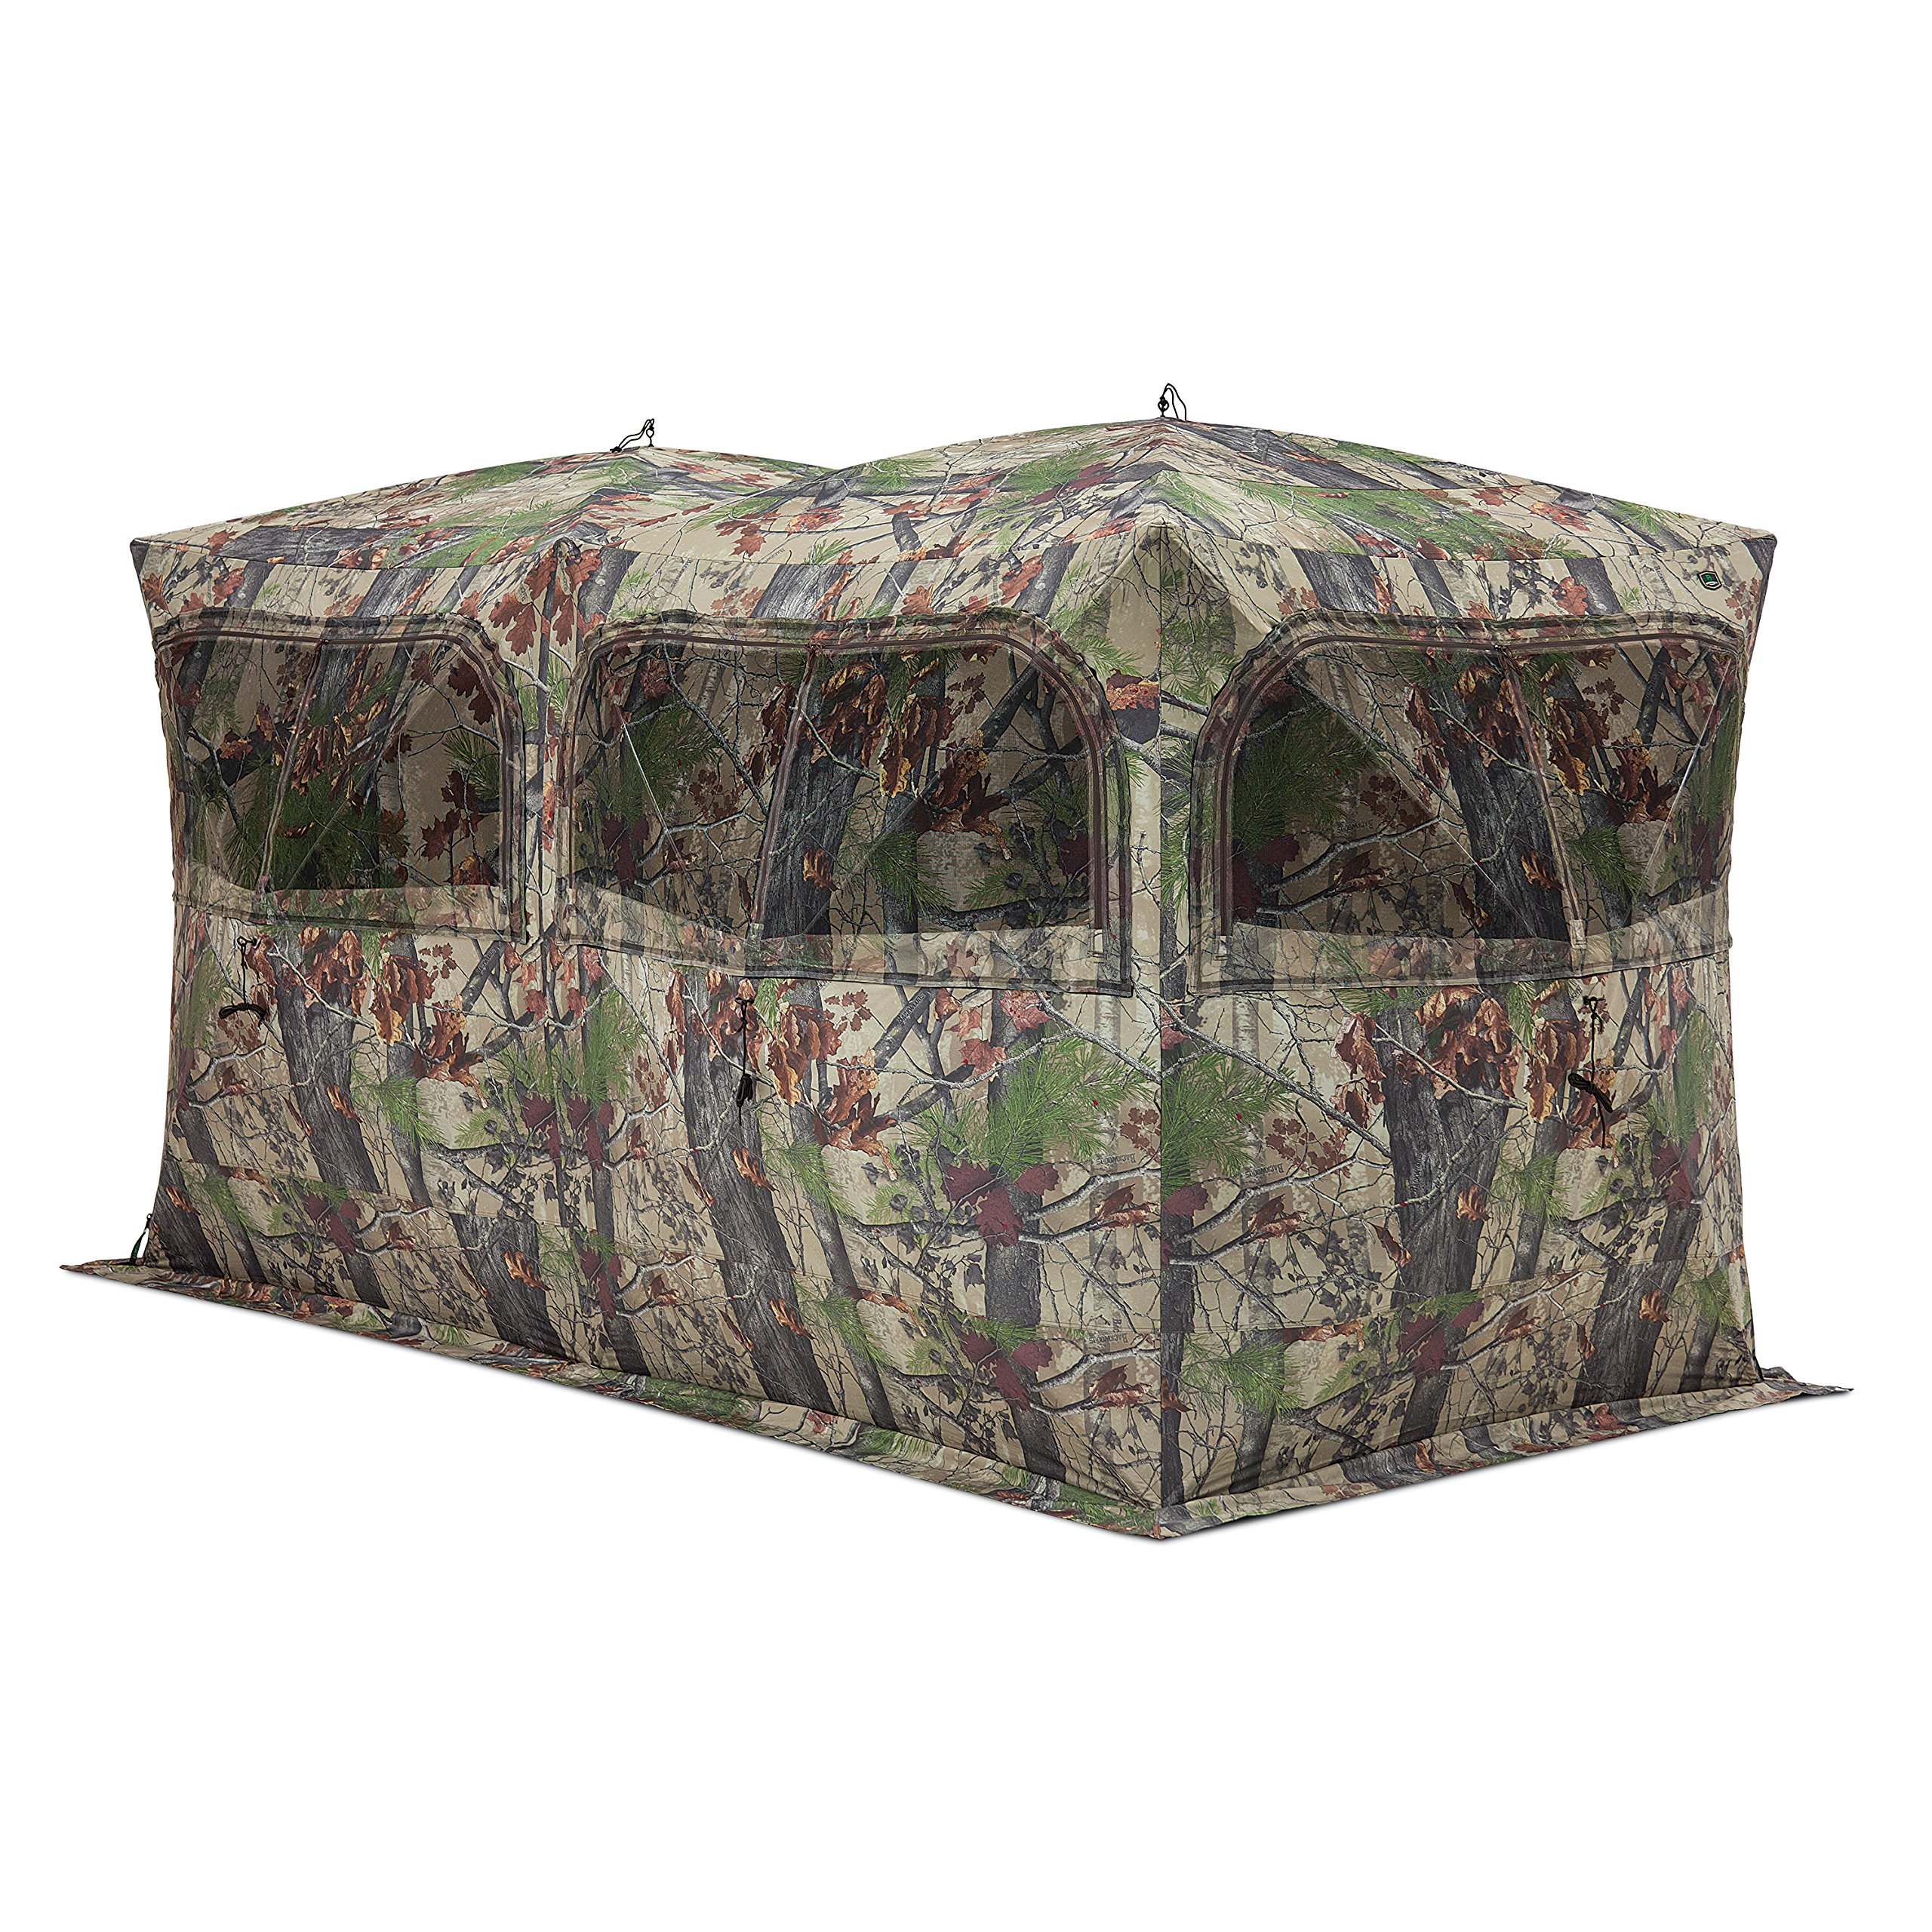 Barronett Beast Ground Hunting Blind, 6 Person Pop Up Portable, Backwoods Camo